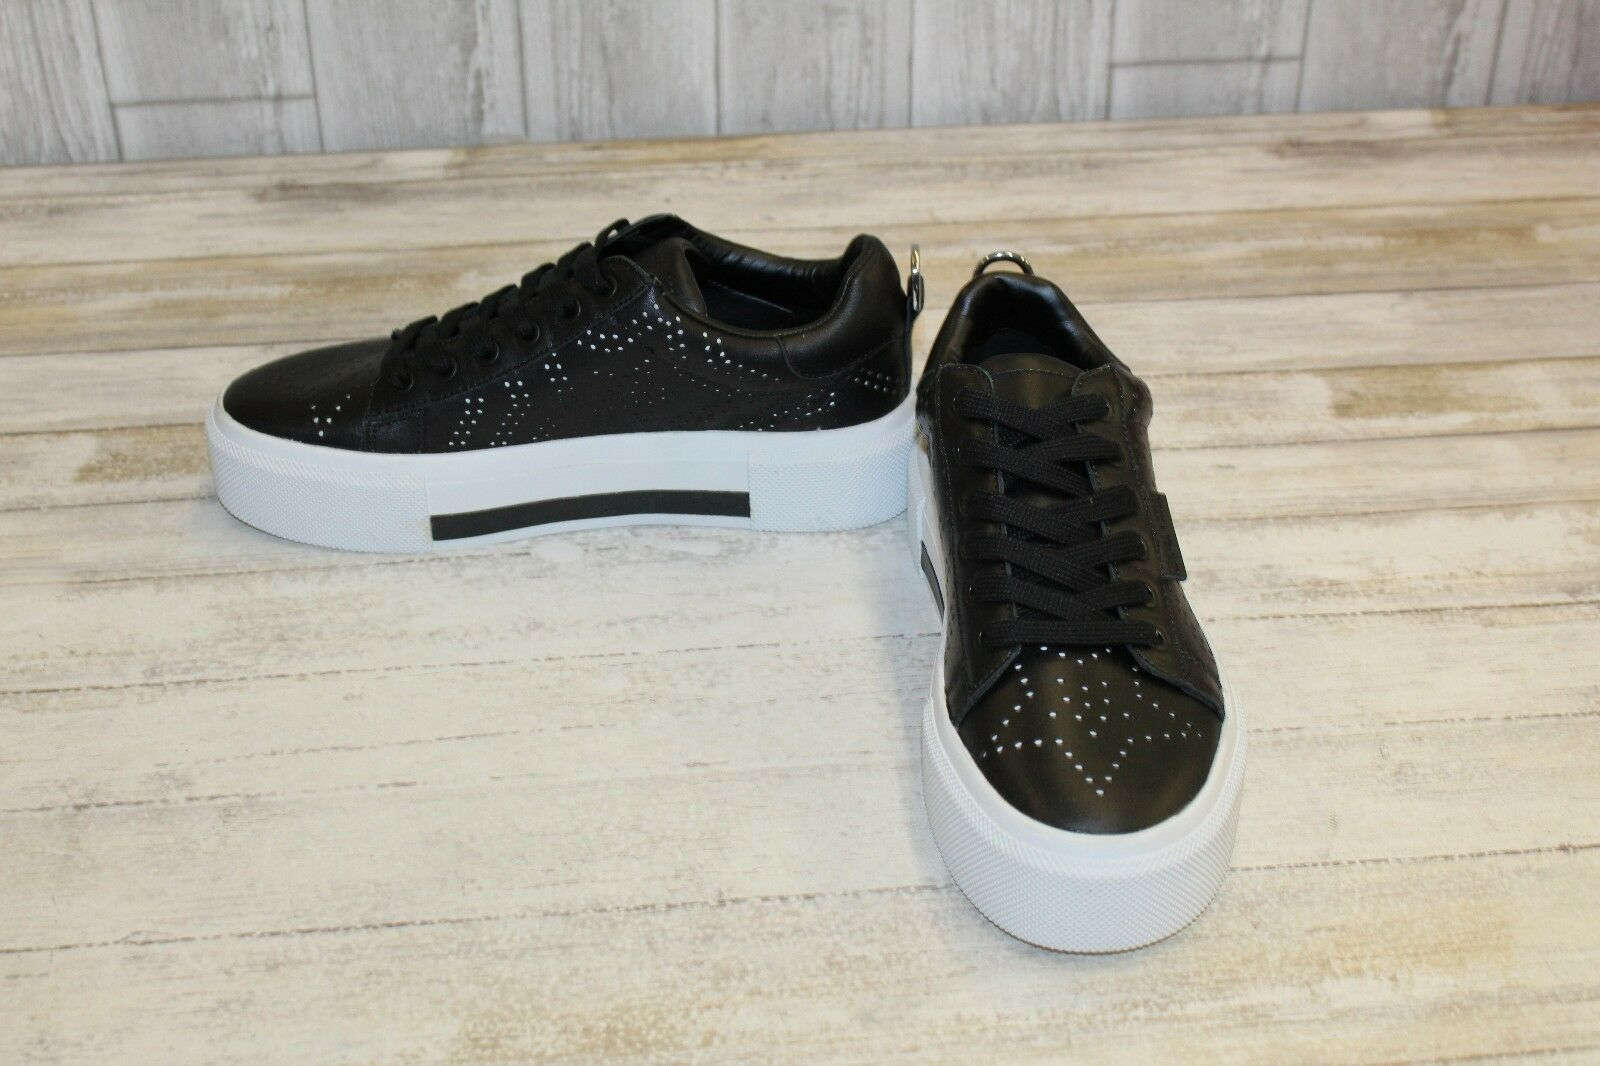 KENDALL + KYLIE Tyler 7 Leather Platform Sneakers, Women's Sizer 8.5M, Black NEW